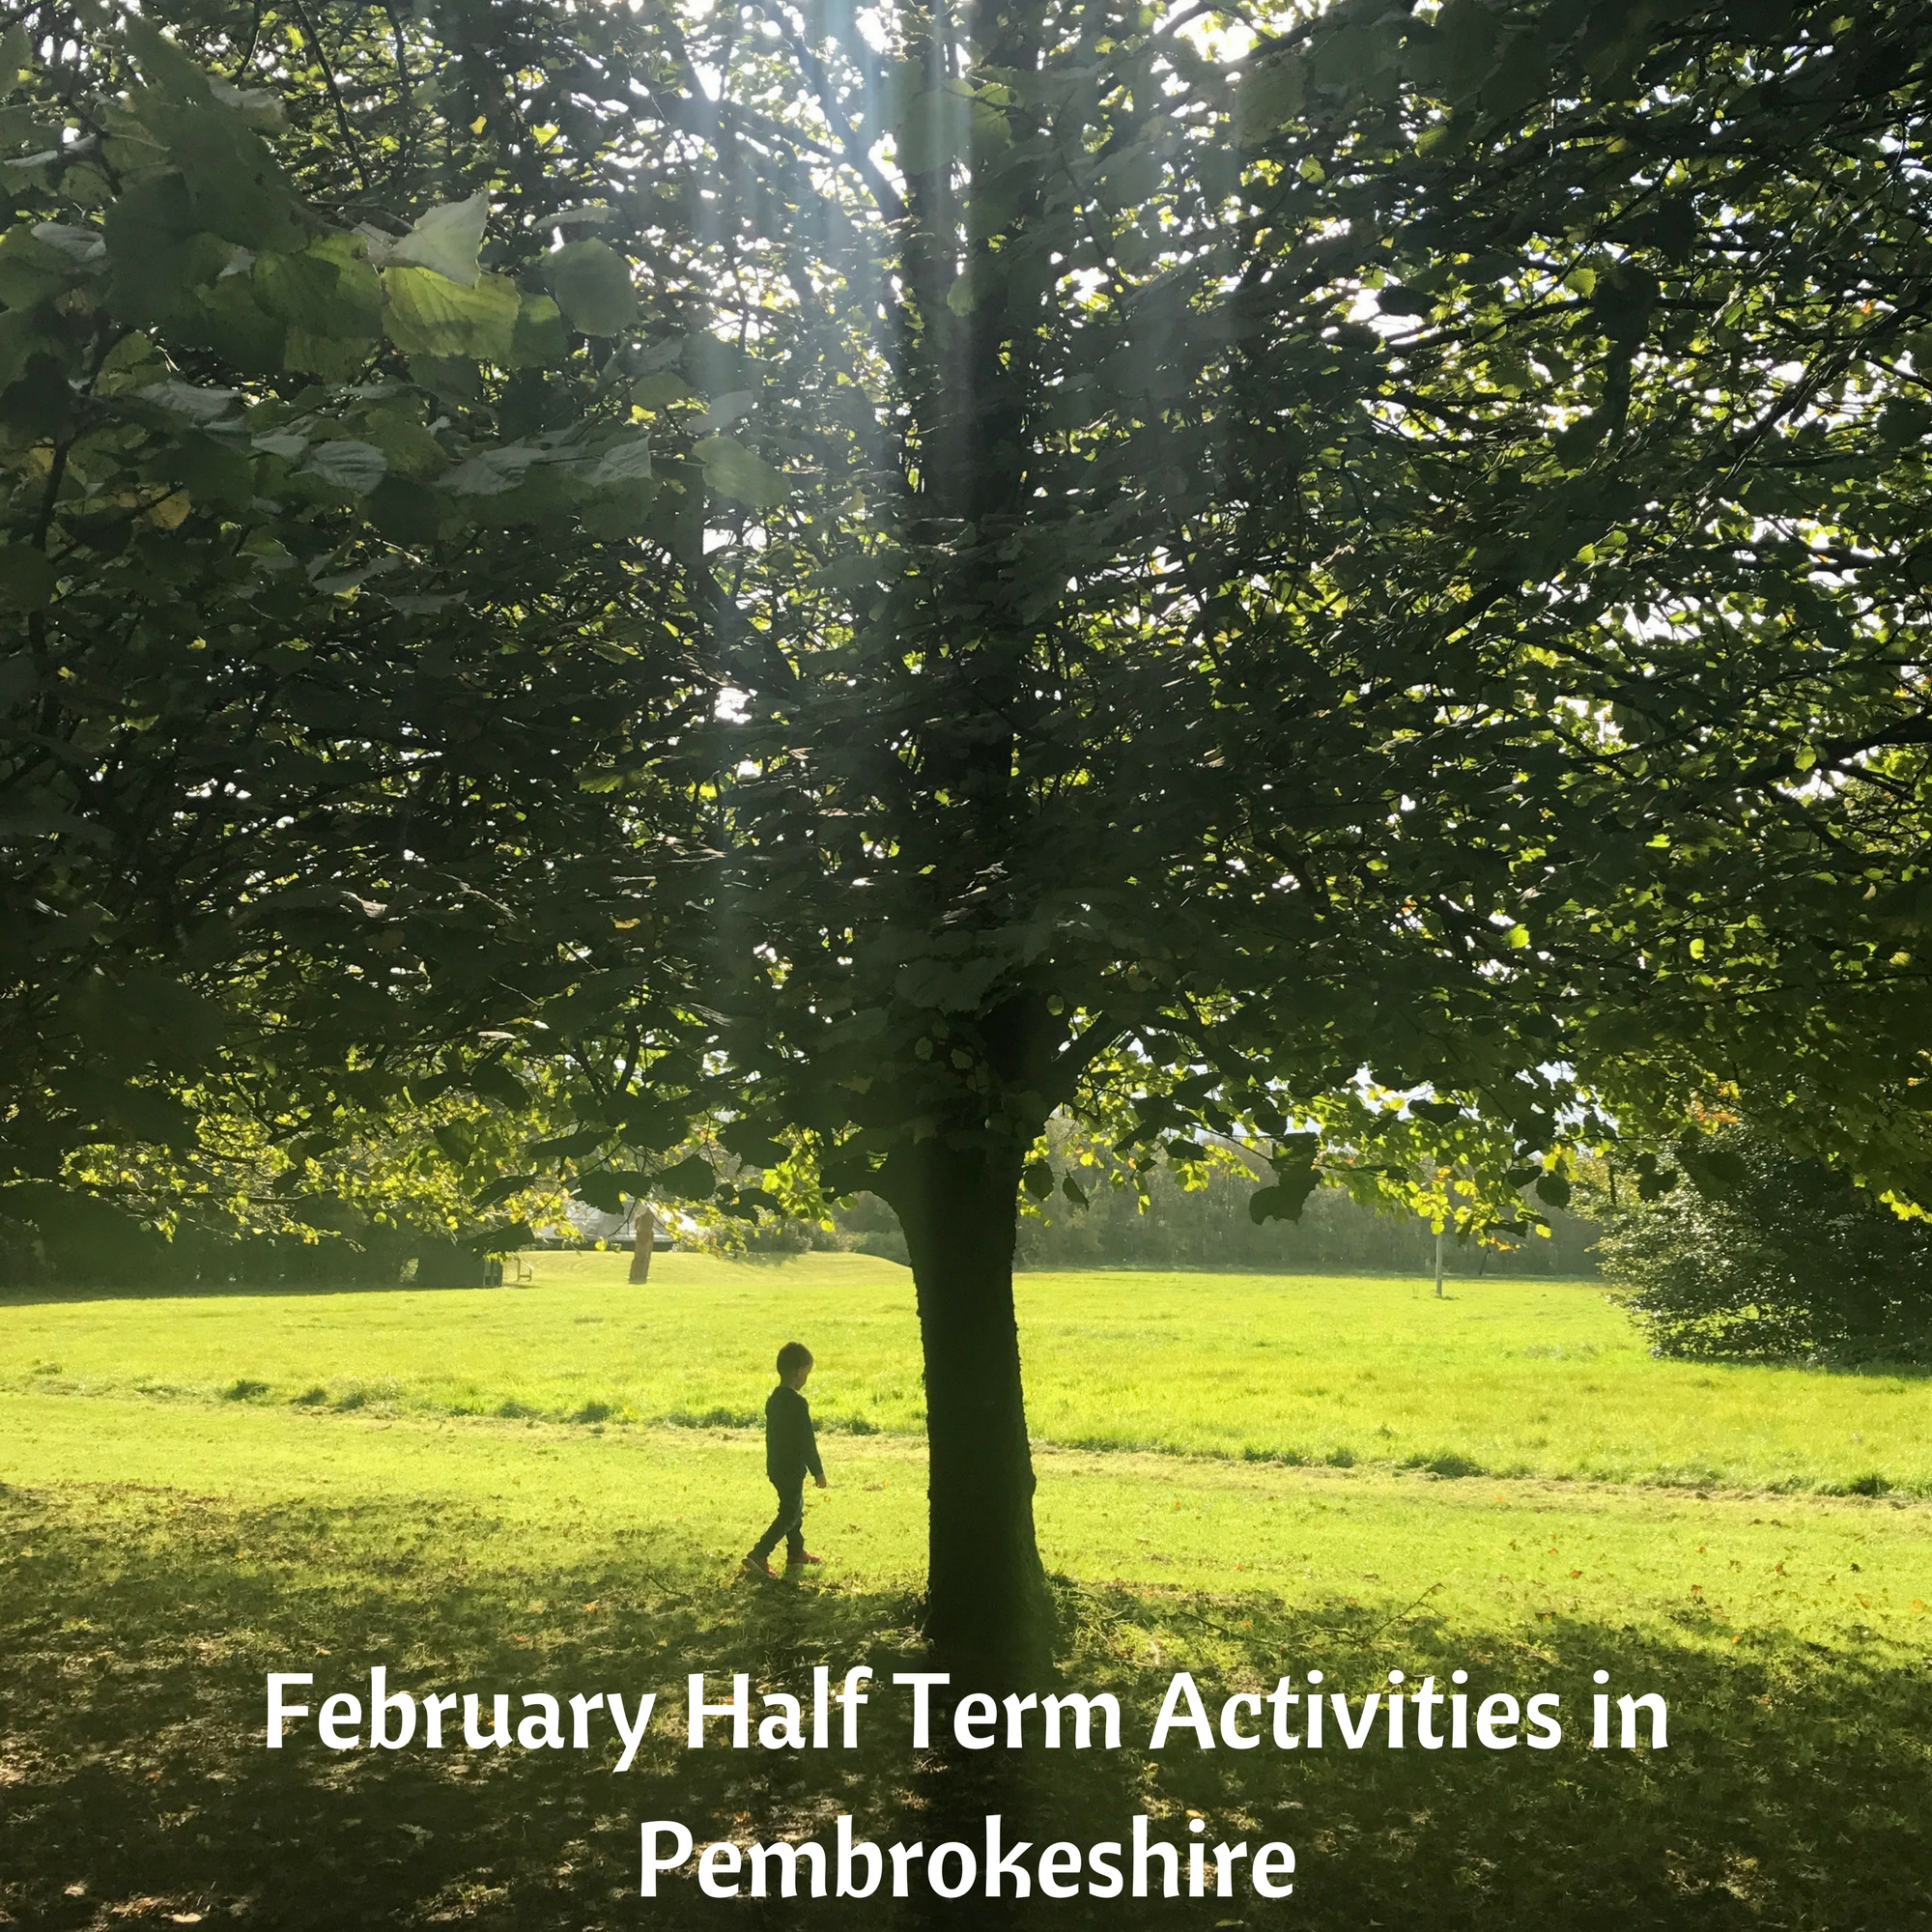 February Half Term Activities in Pembrokeshire